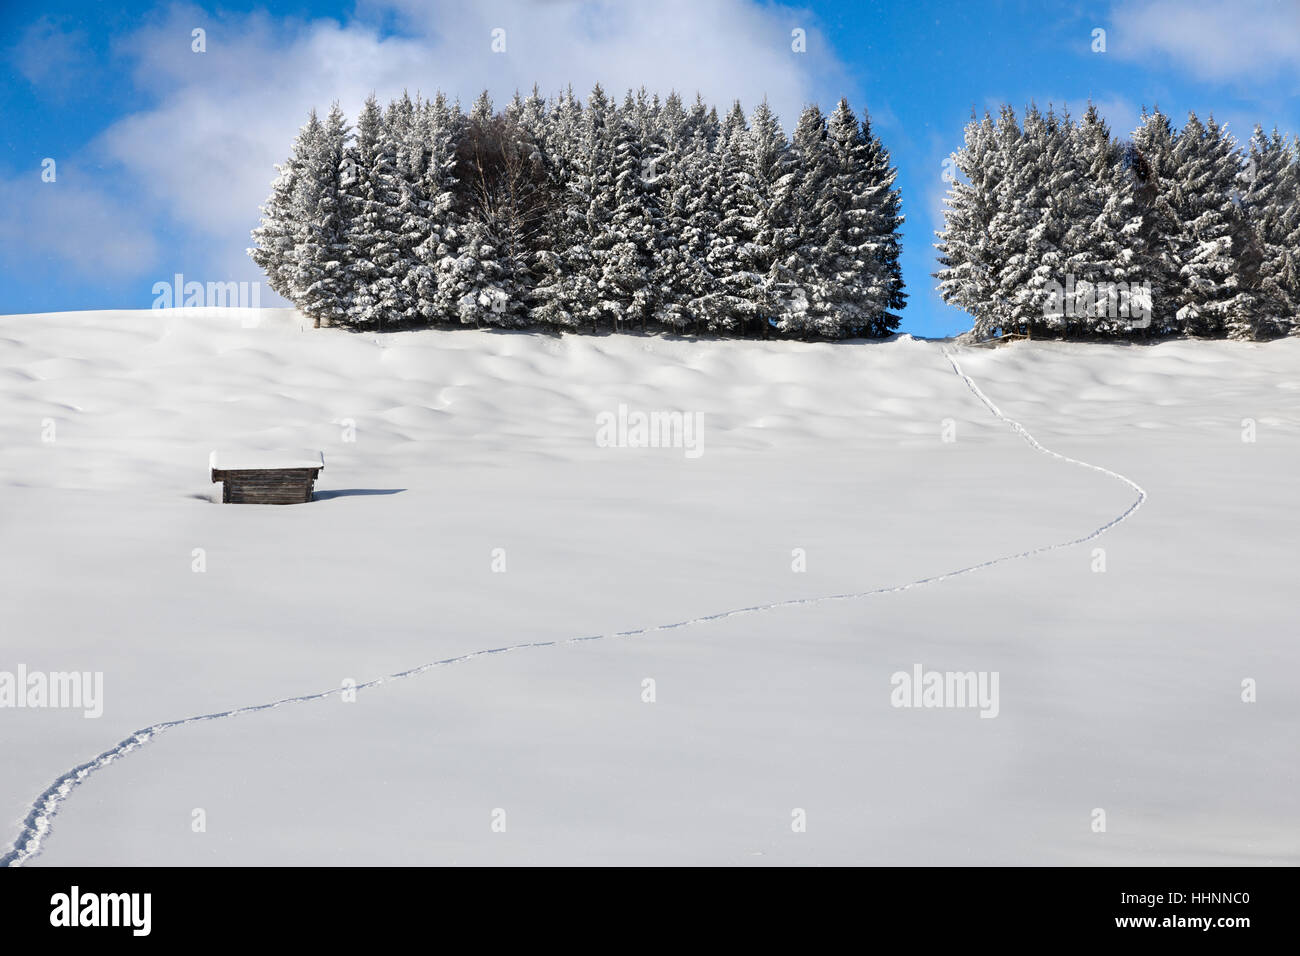 Traces in the snow, German Alps Stock Photo